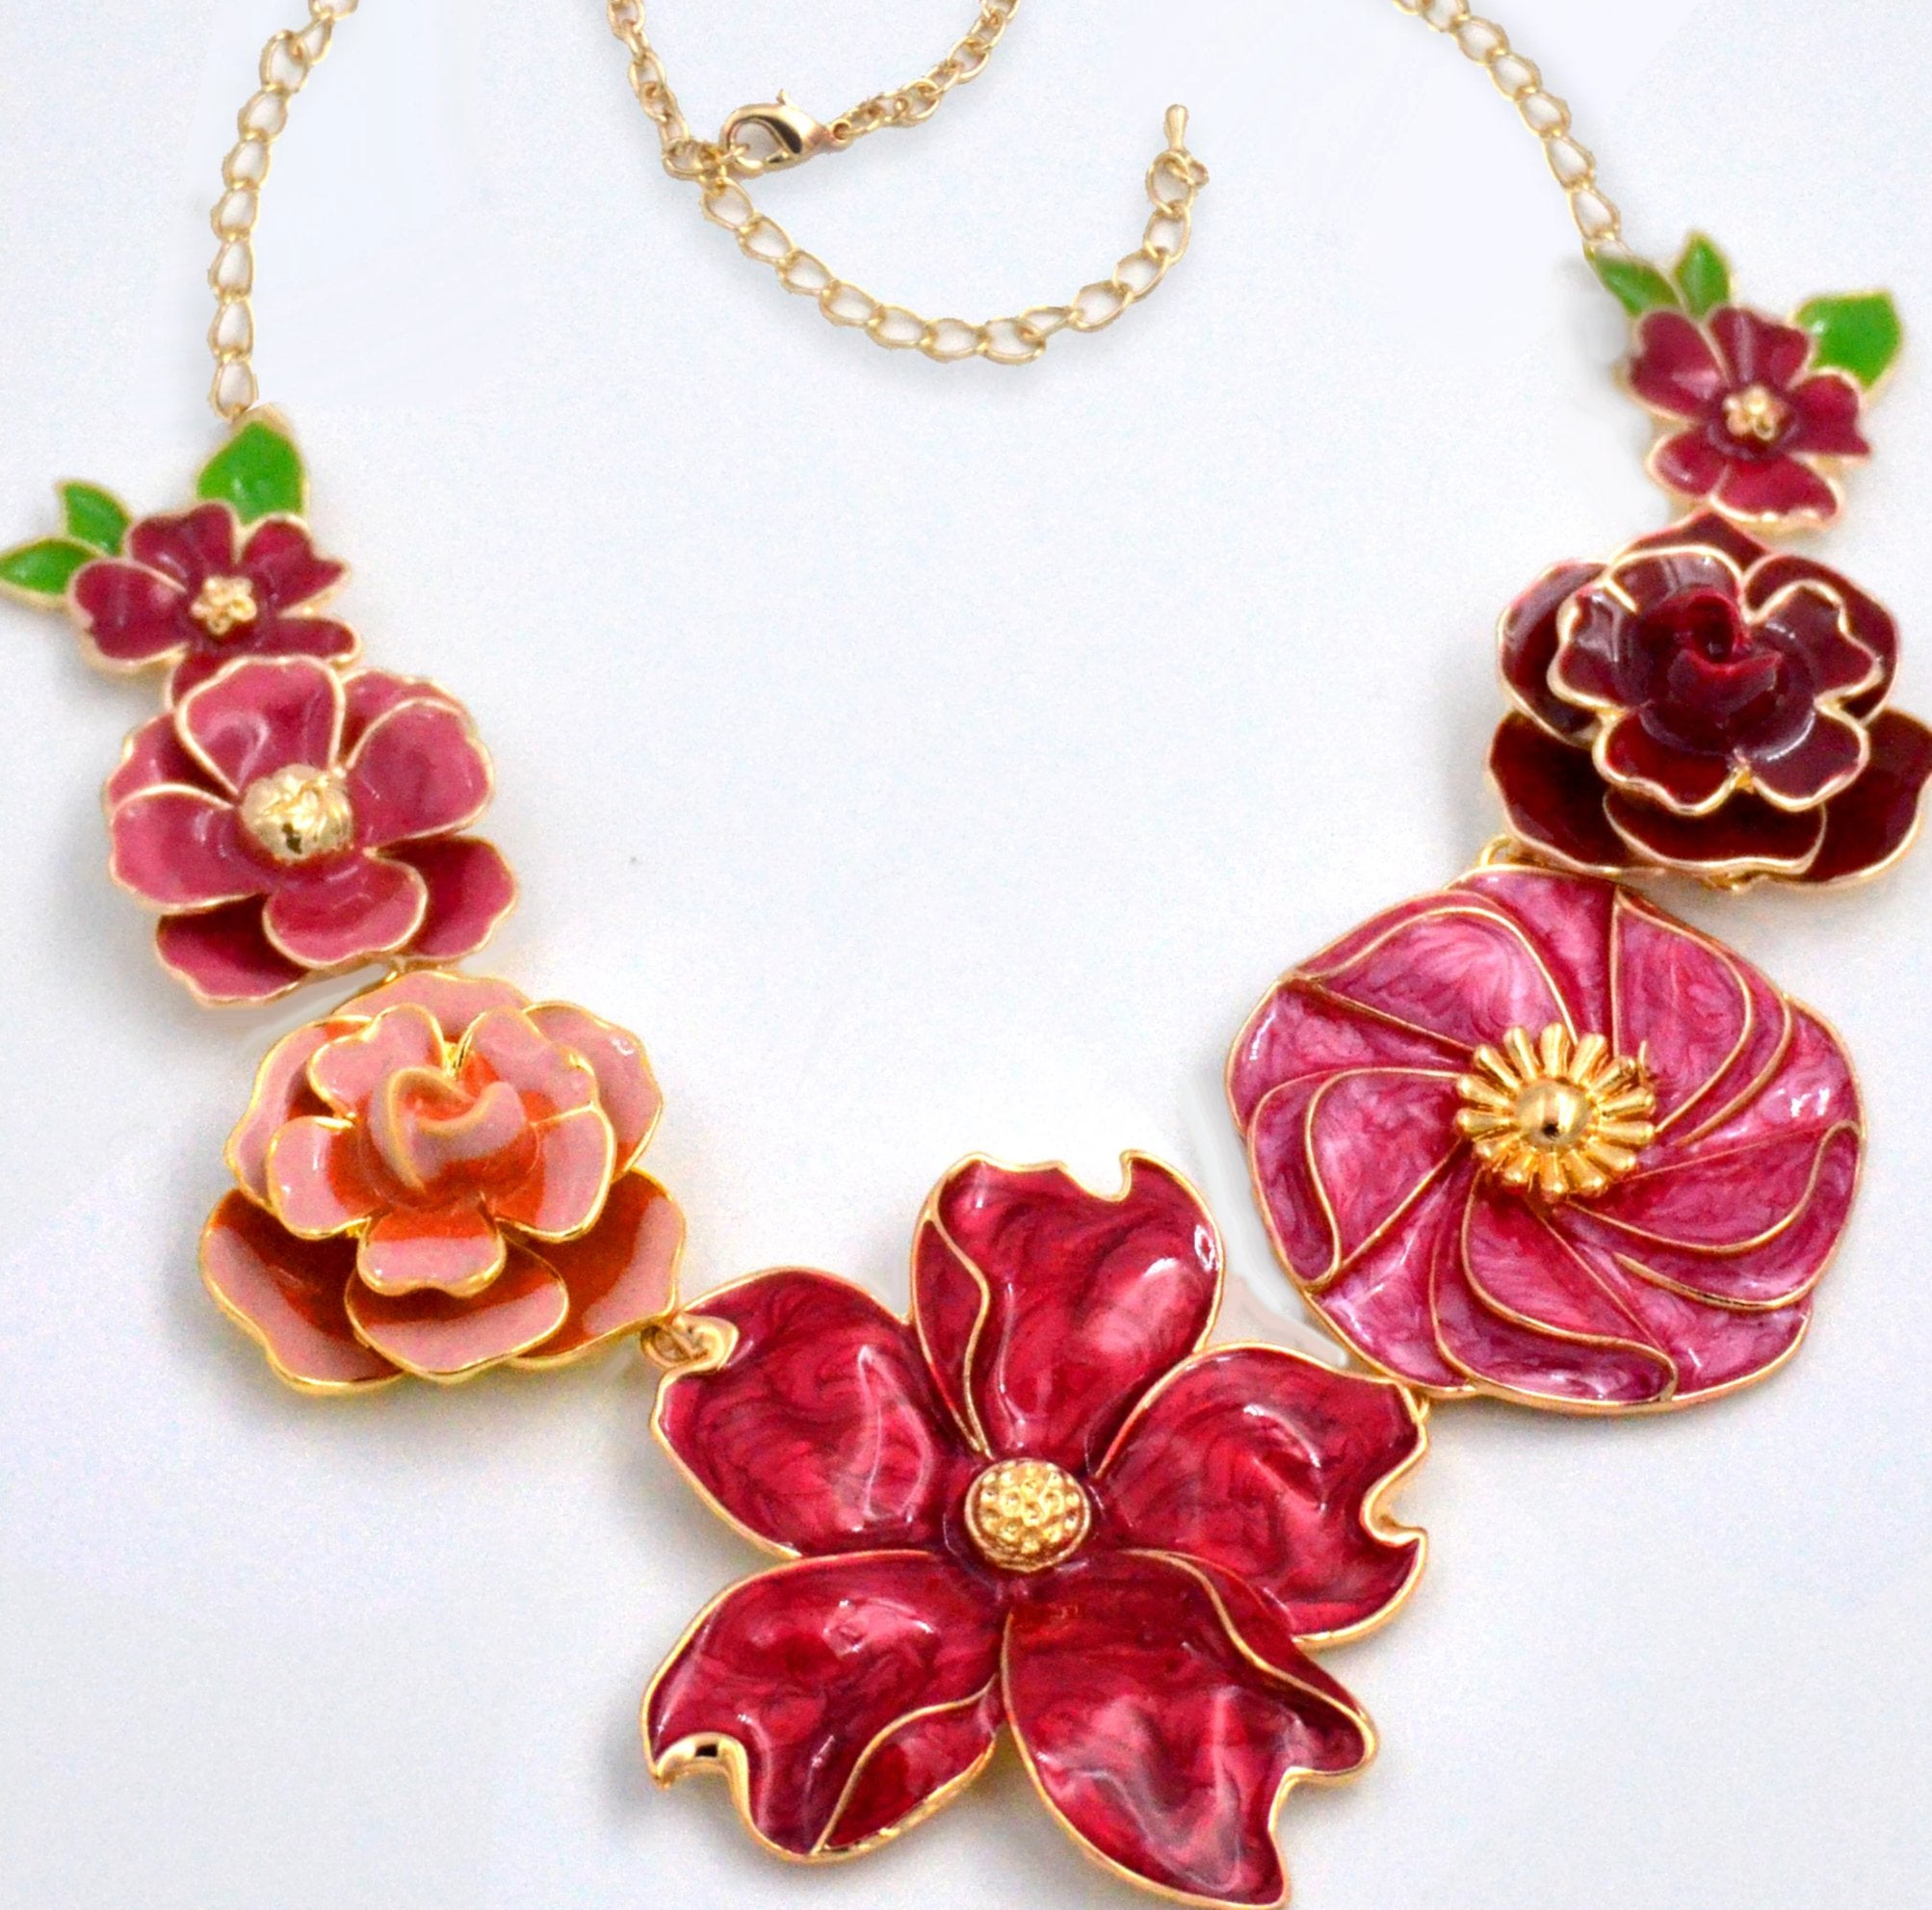 Ruby Rose Enamel Flower Necklace - Woman's Jewelry